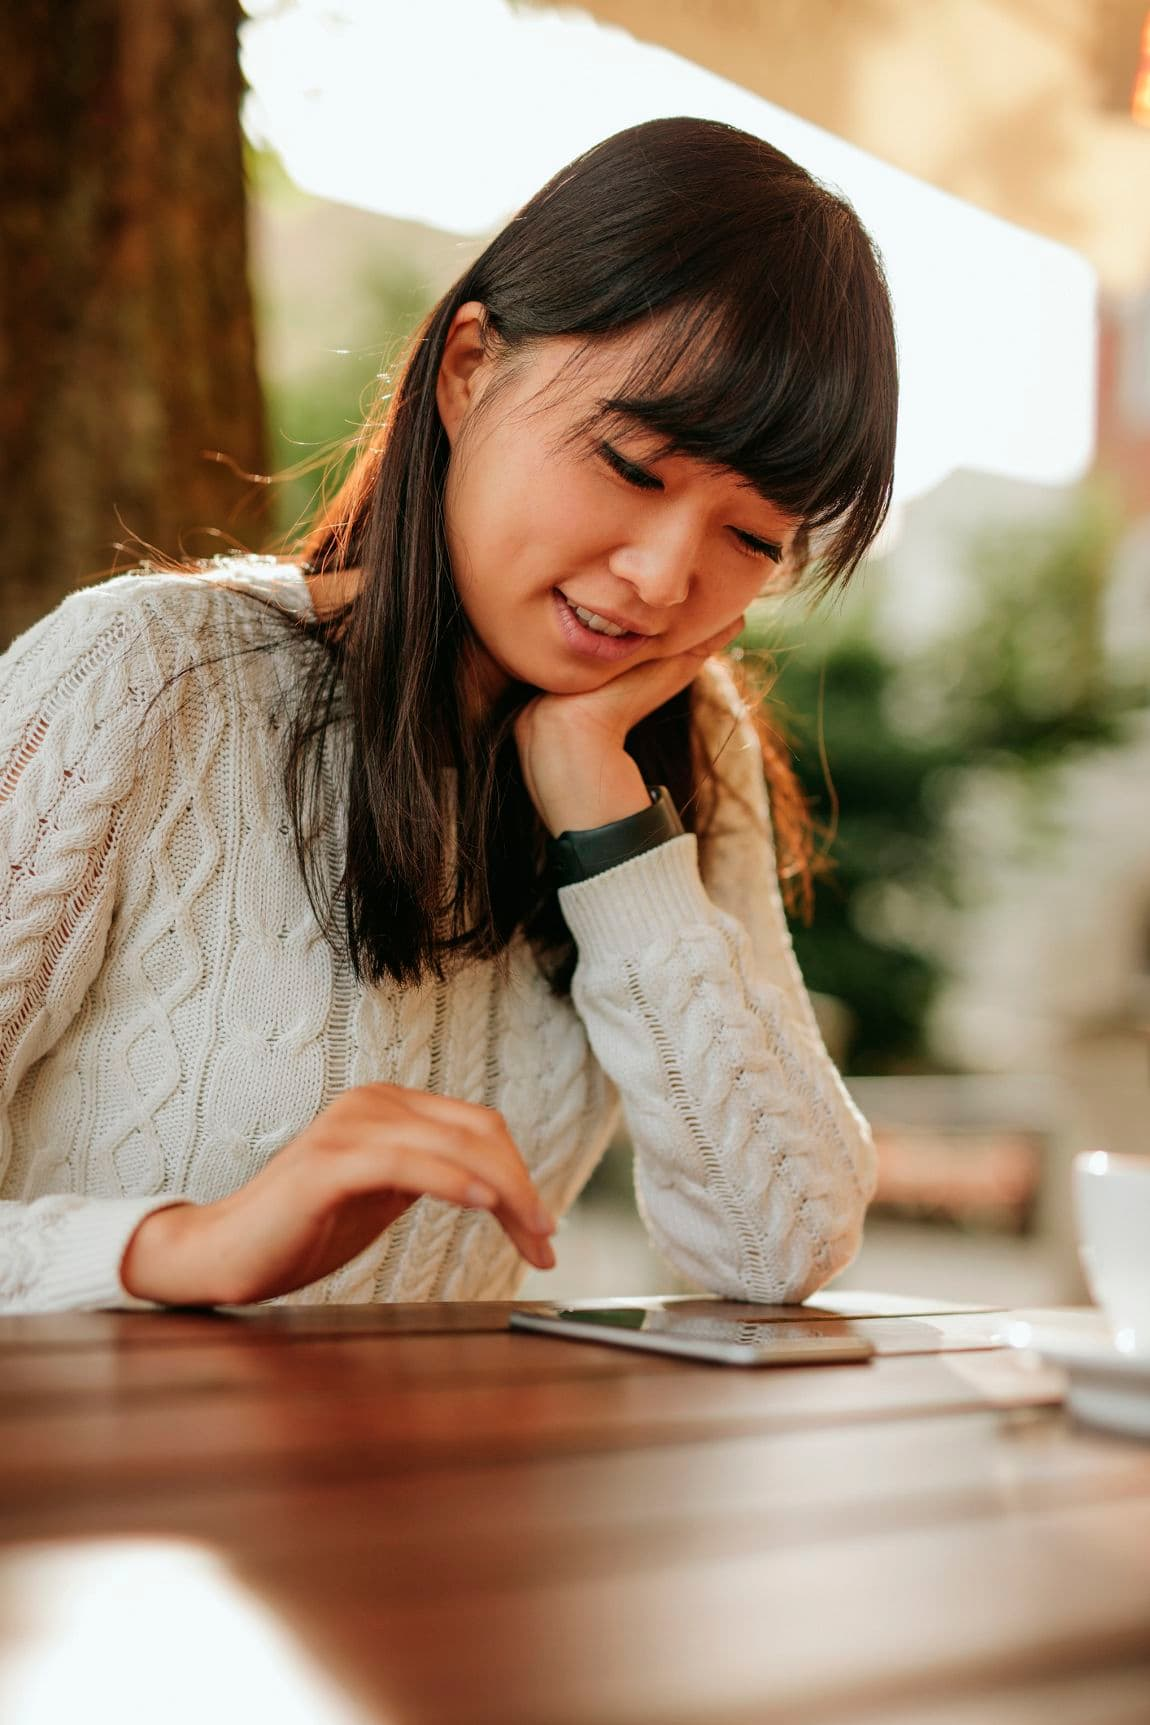 Beautiful chinese woman using cellphone at outdoor cafe. Asian female model using mobile phone at coffeeshop.